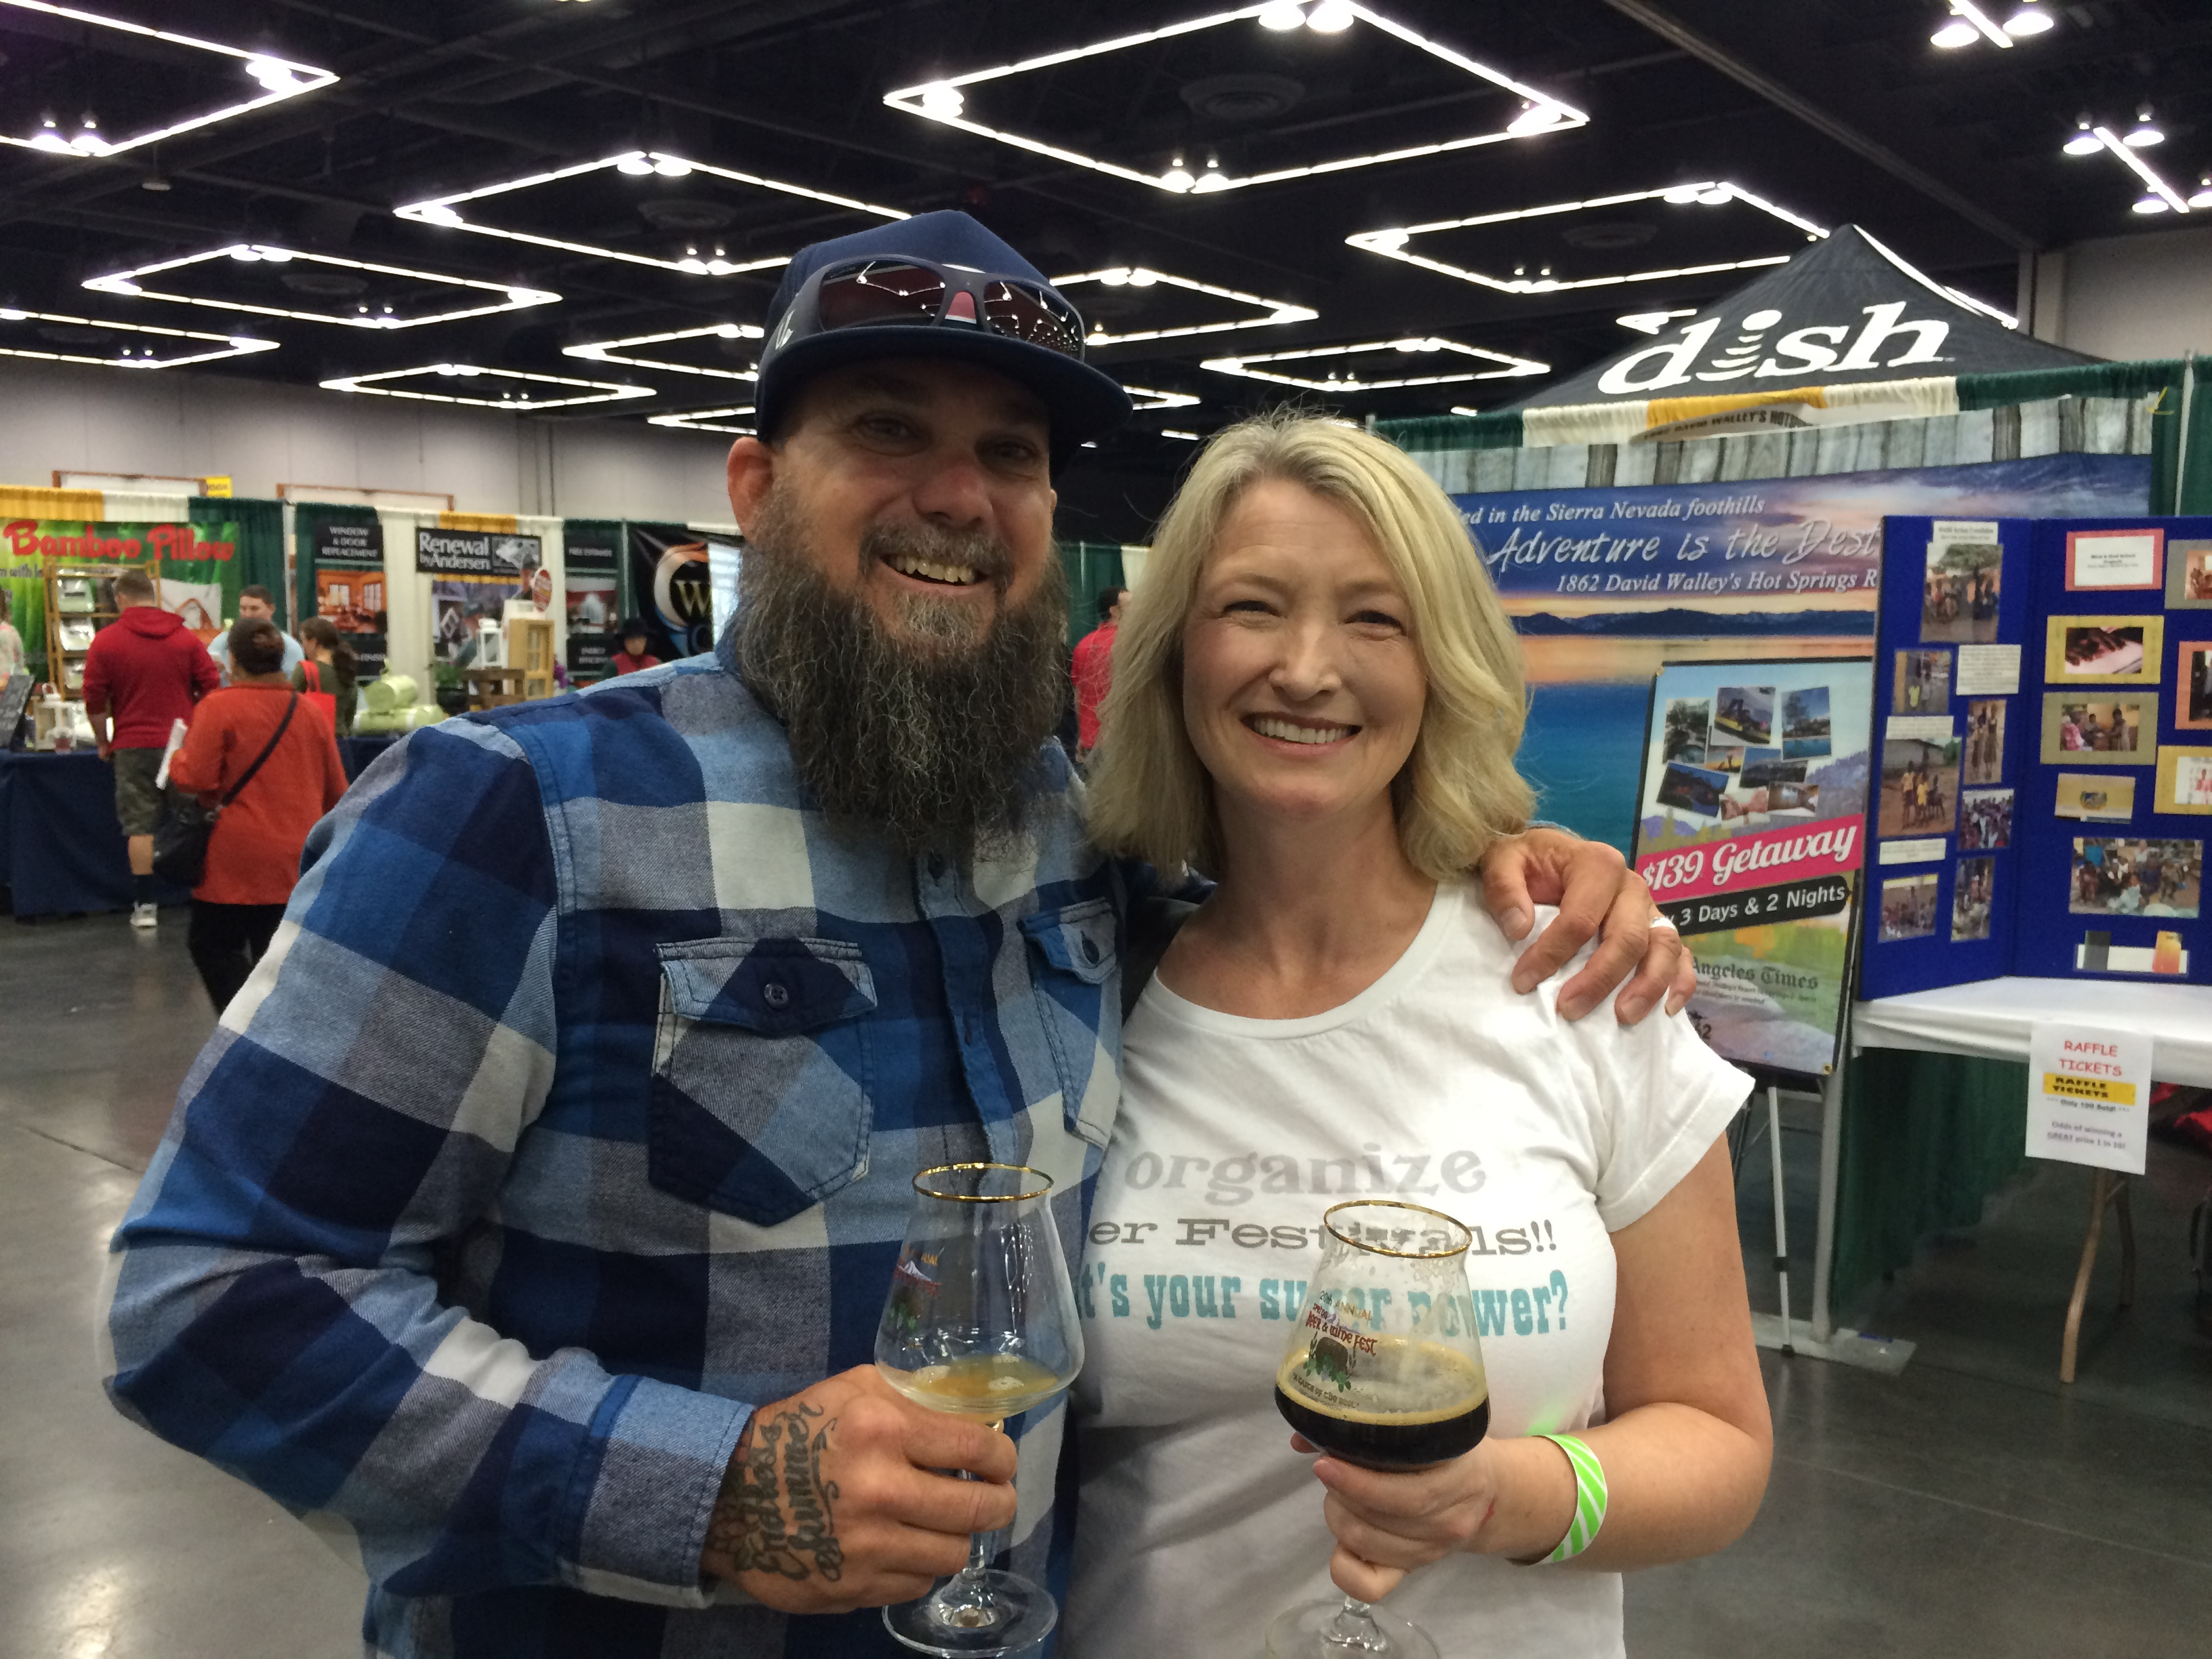 Organic Beer Fest founder Craig Nicholls with Chris Crabb, a local treasure in craft beer festival promotions.